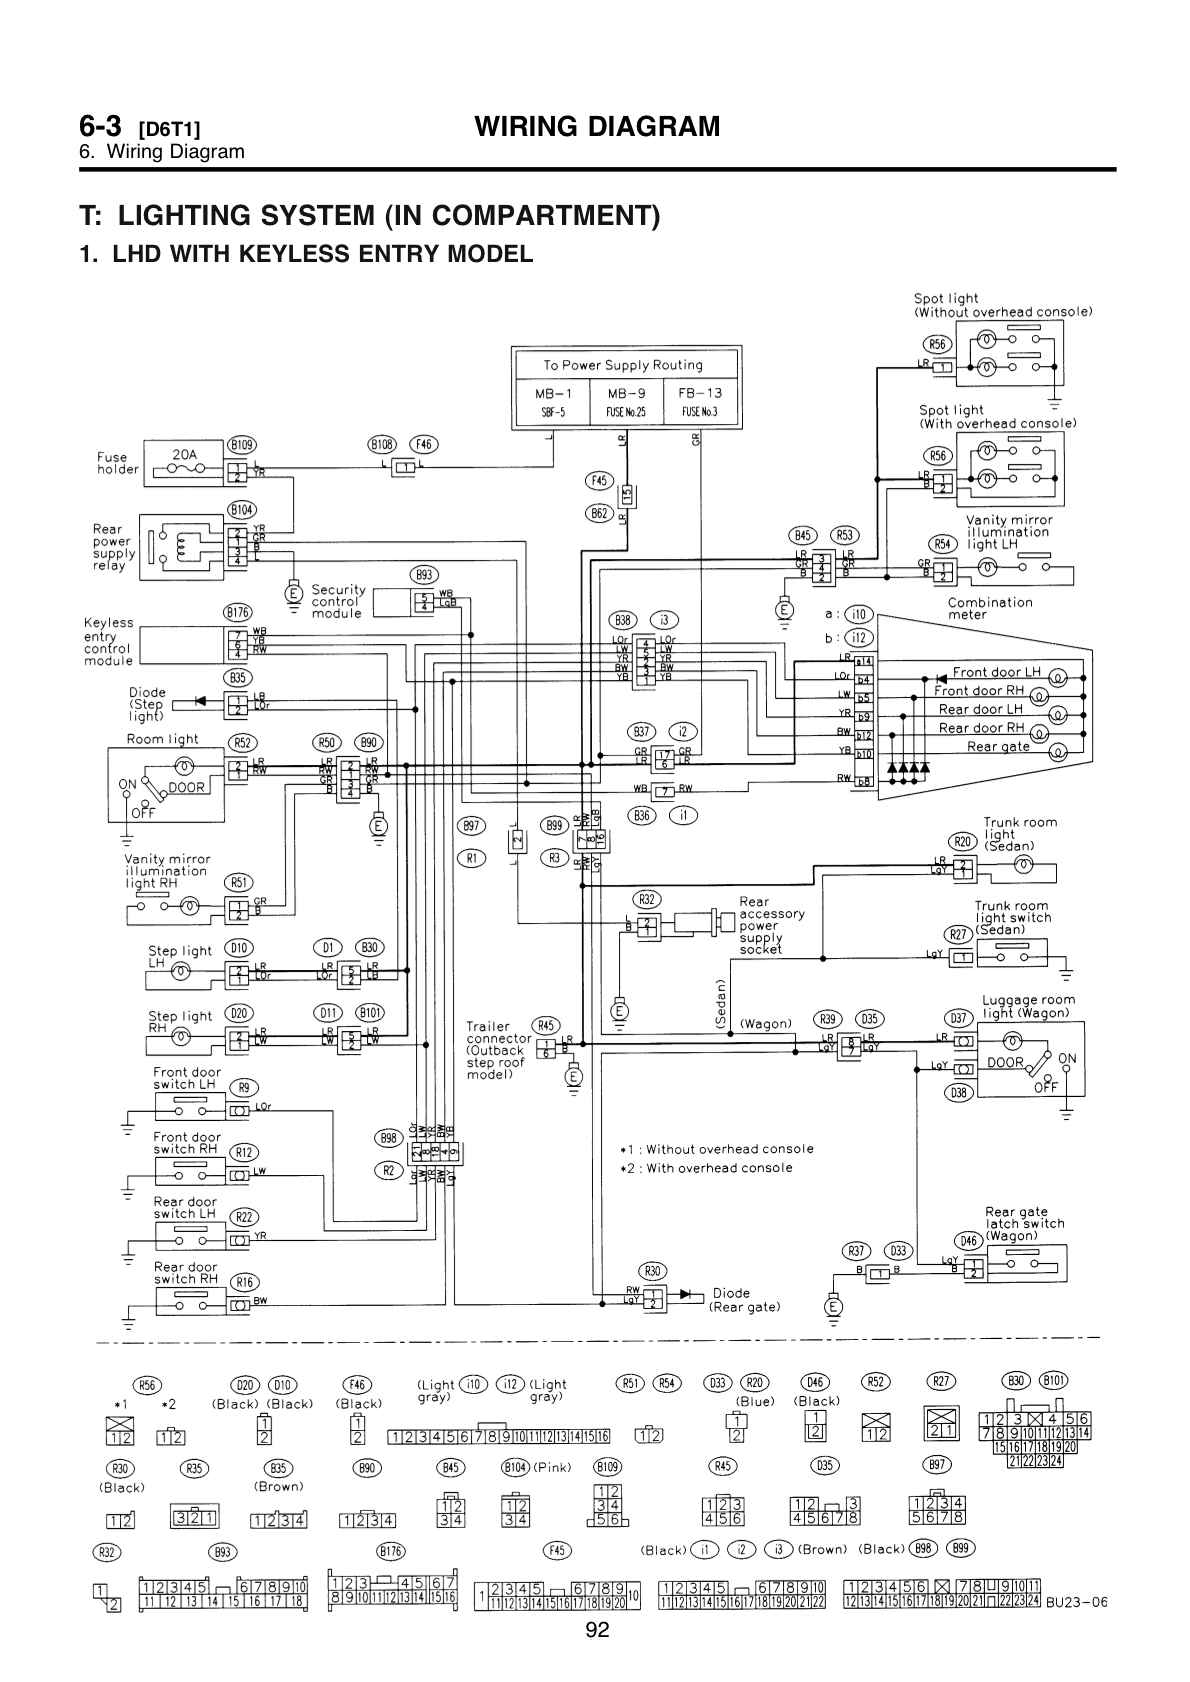 wiring_diagram1 subaru diff wiring diagram subaru wiring diagrams instruction Subaru Forester Radio Wiring Diagram at nearapp.co